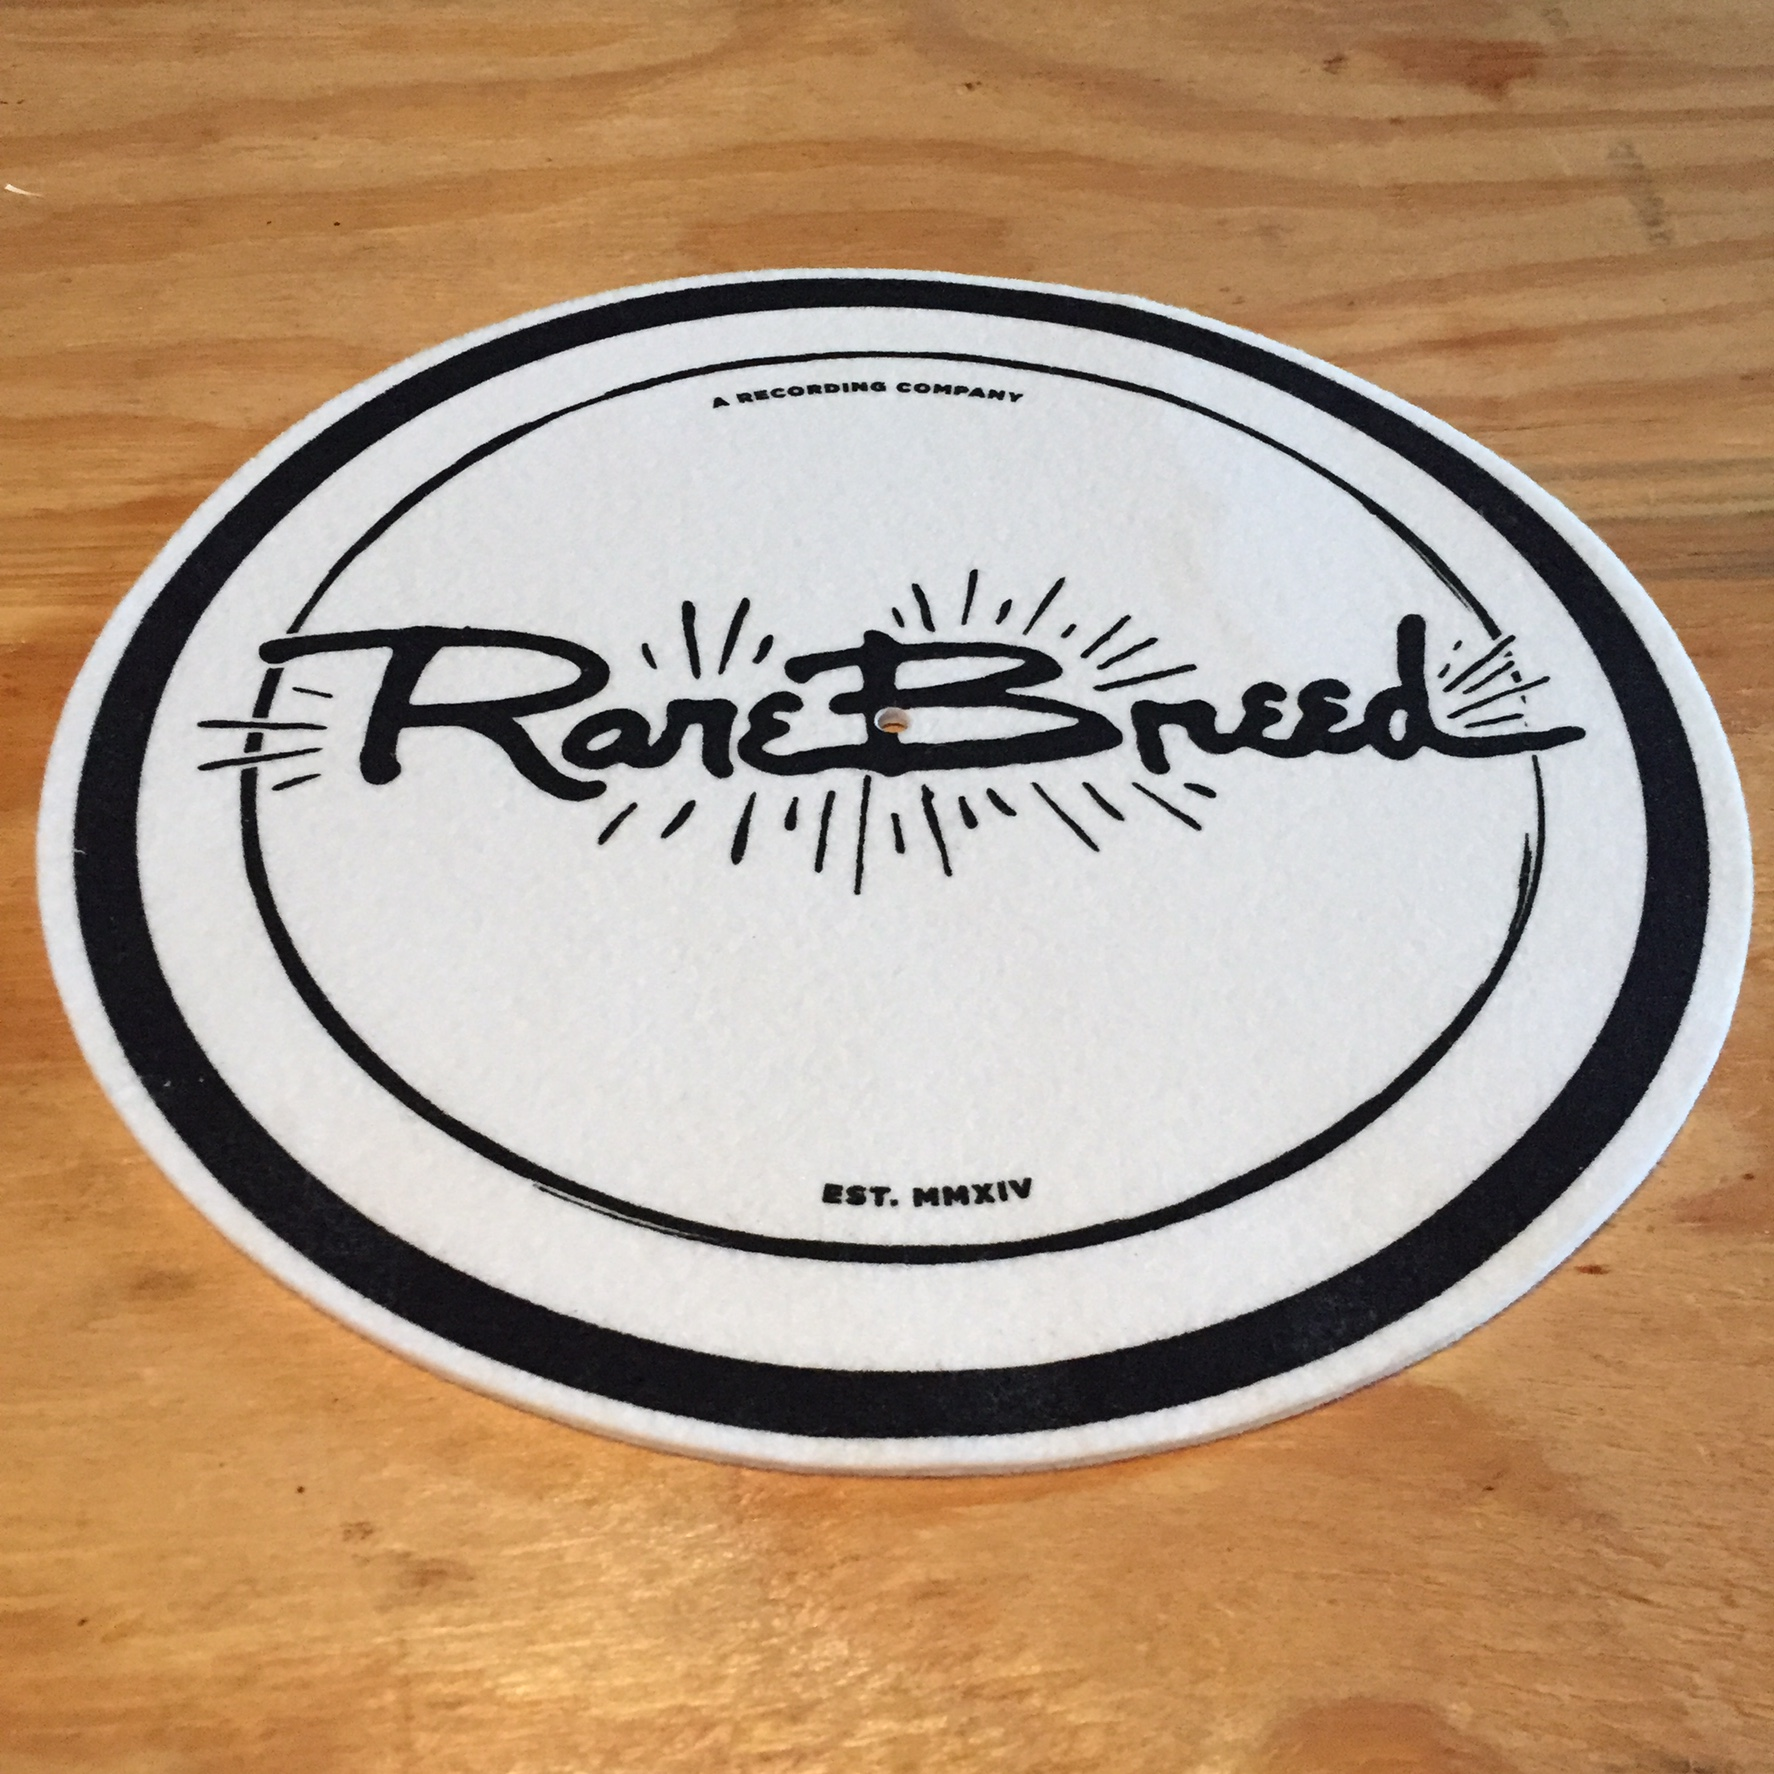 RARE BREED Slipmat